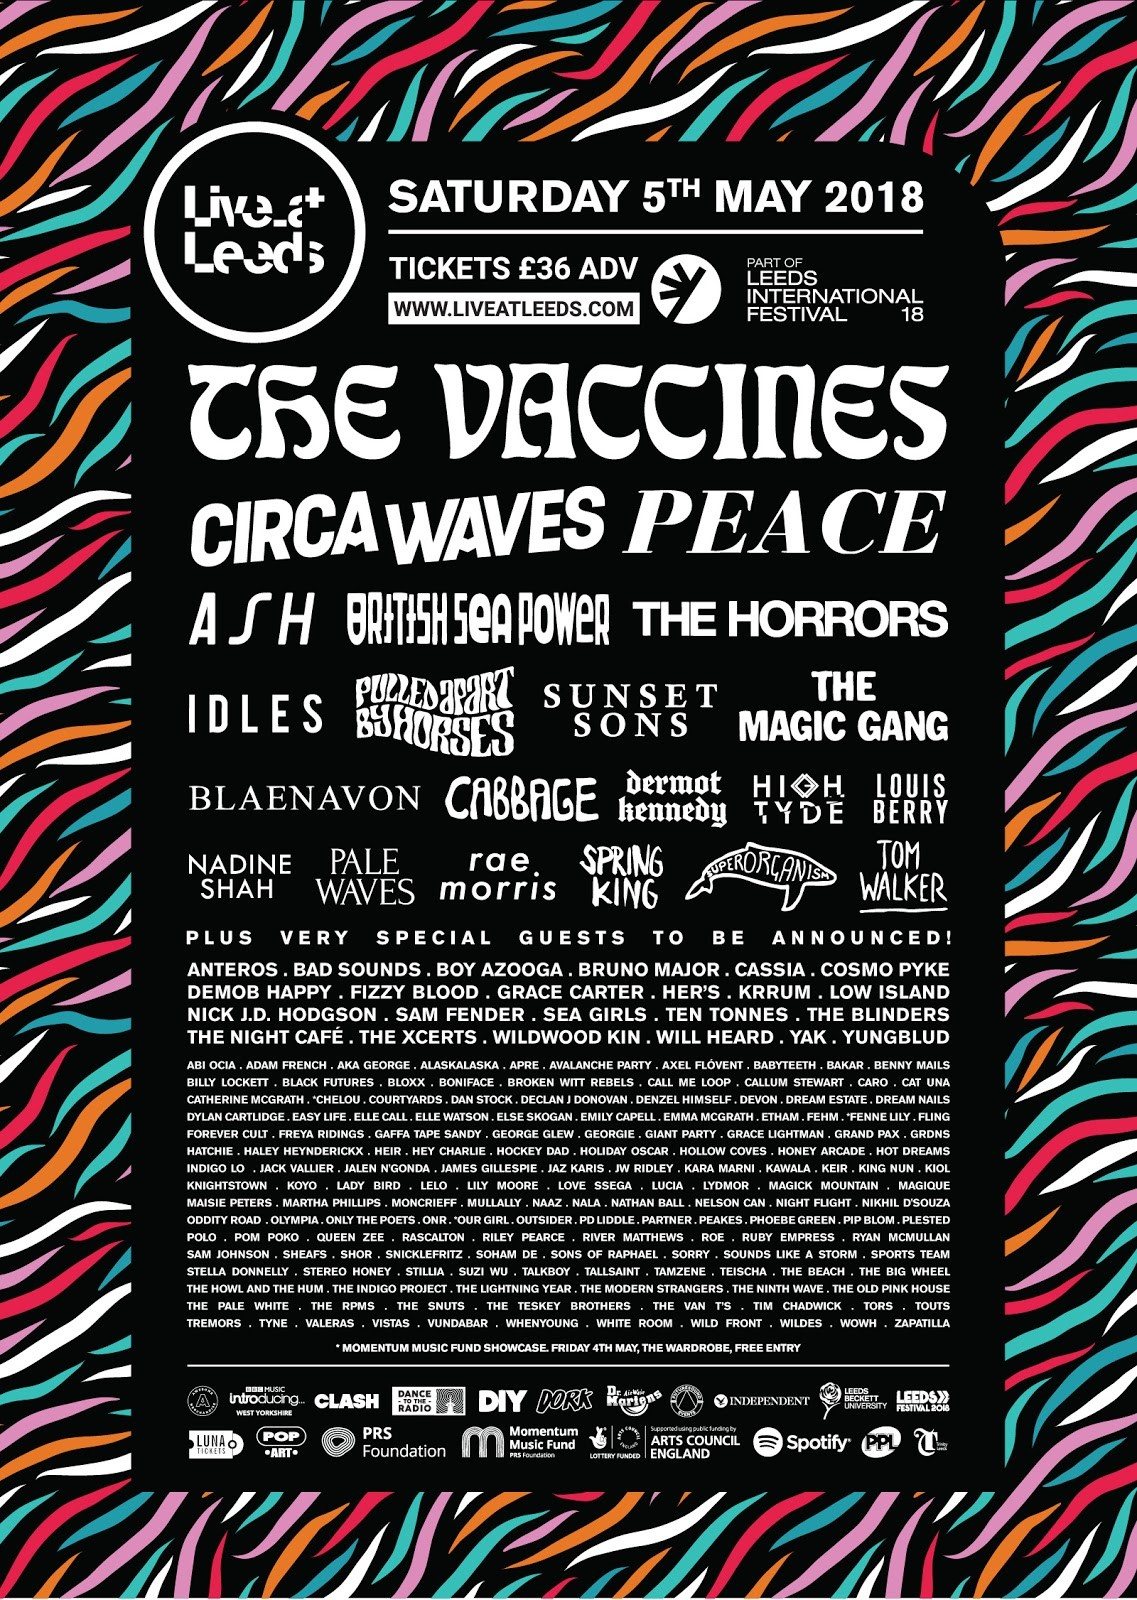 Live at Leeds 2018 Line Up